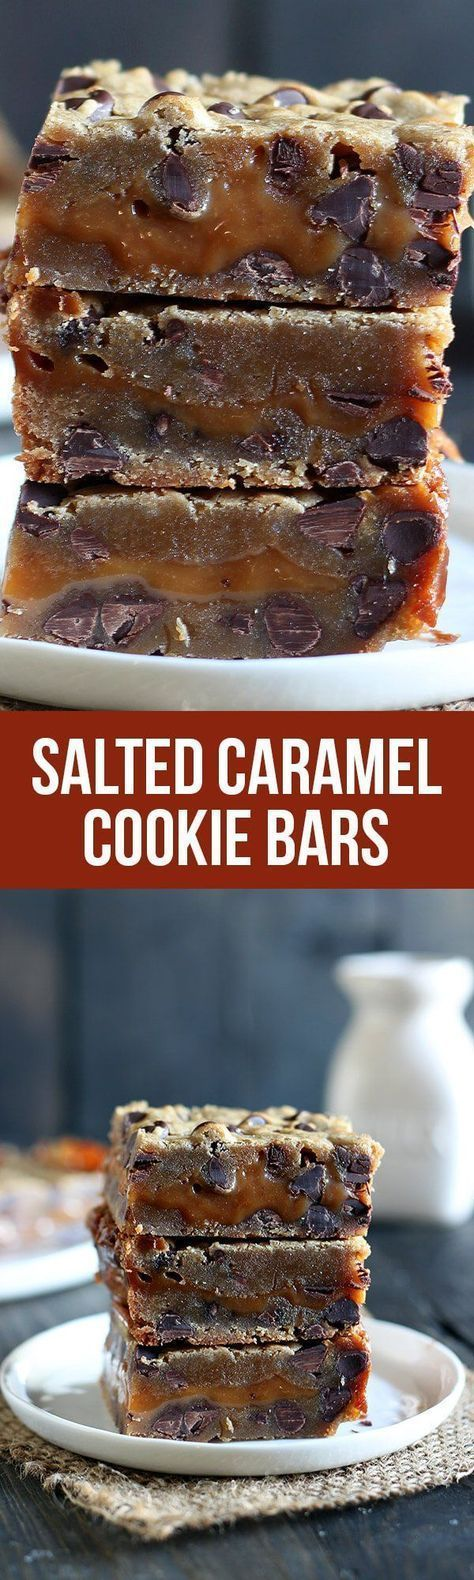 Salted Caramel Cookie Bars – #Bars #Caramel #cookie #salted 75d474655aecf4d4696eb5724caaecd9